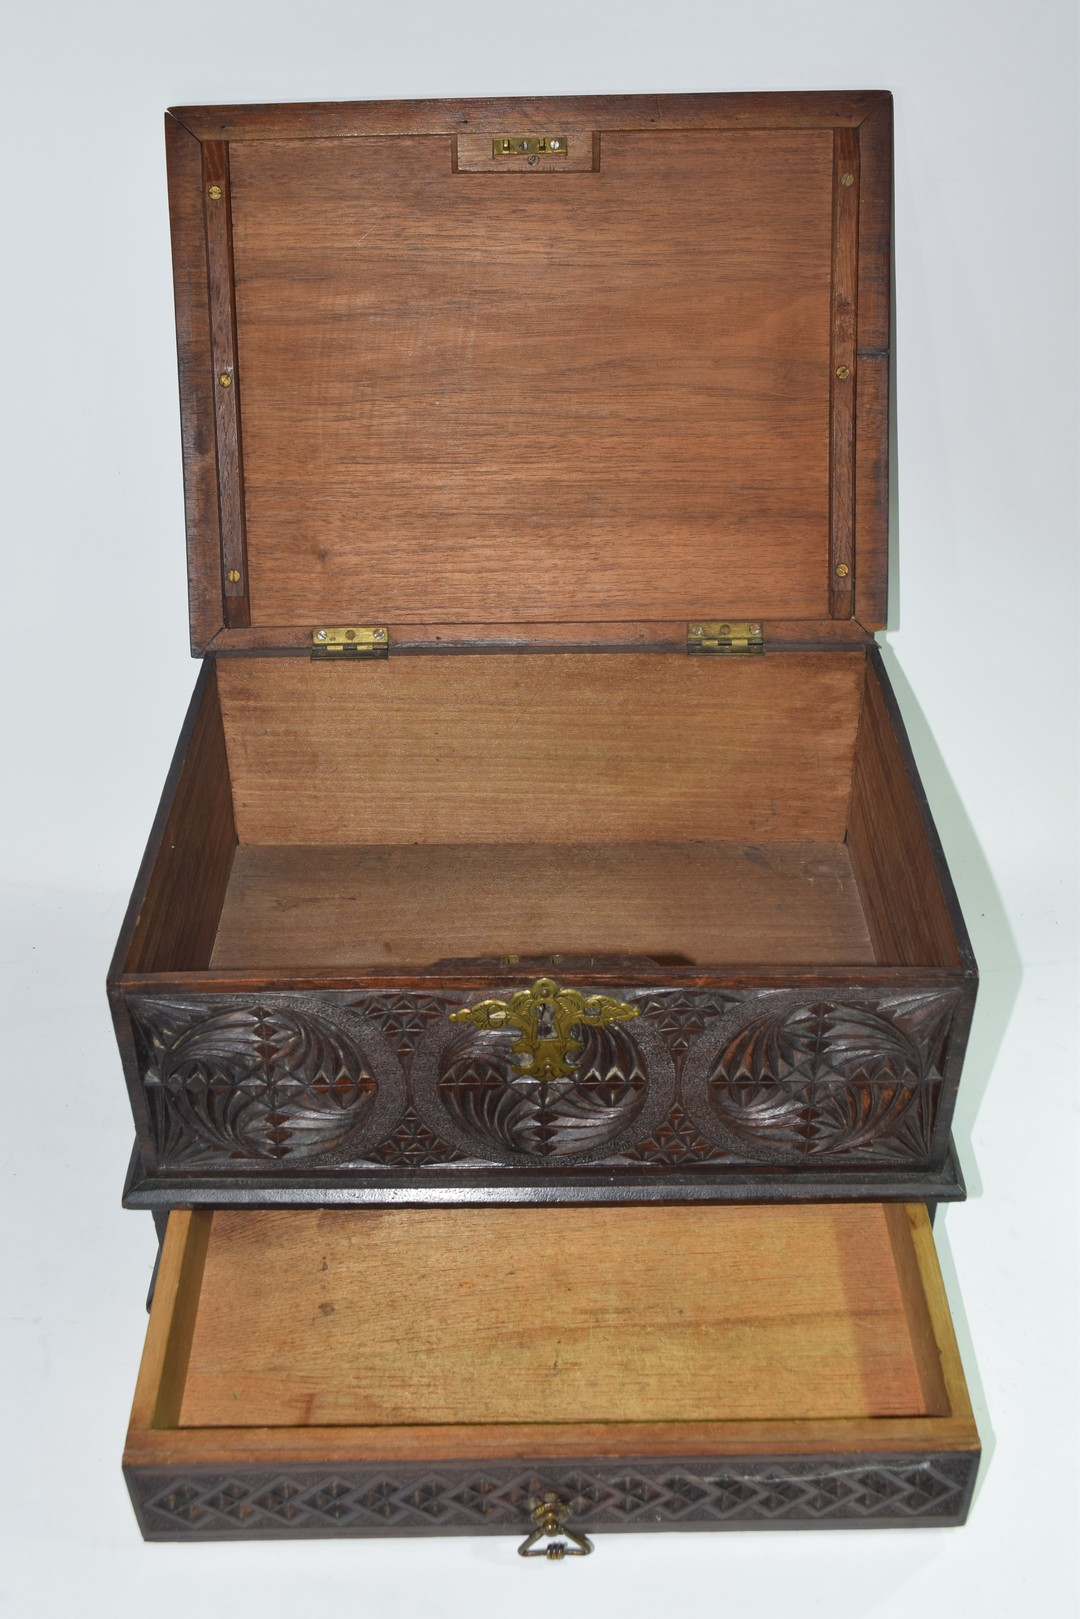 Late 19th/early 20th century Far Eastern table top box - Image 5 of 5